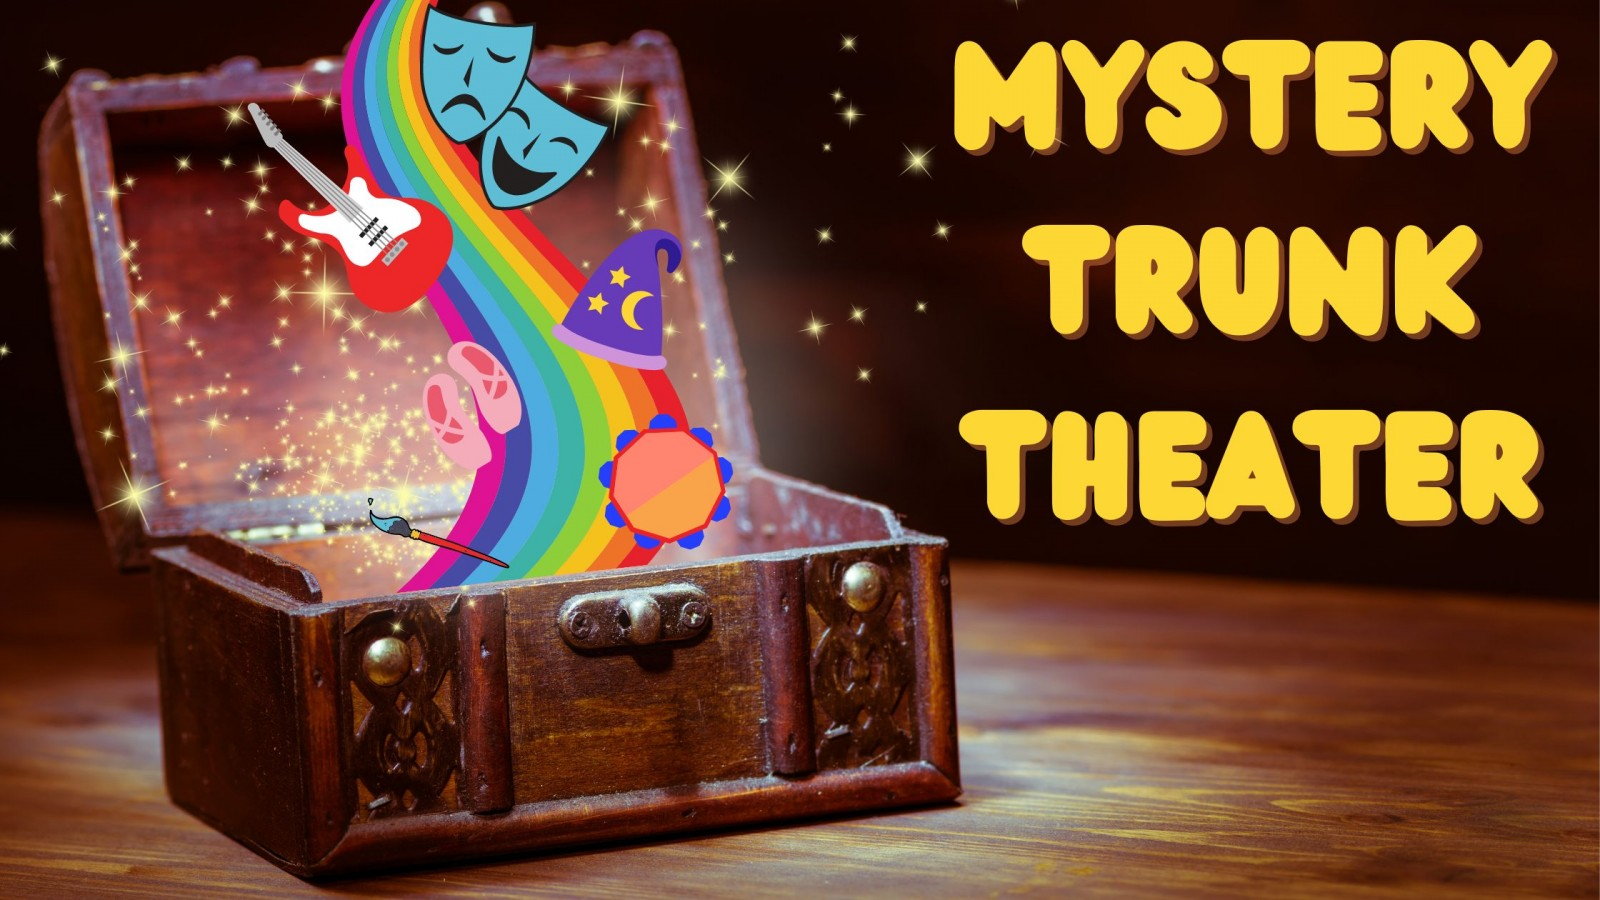 Mystery Trunk Theater.